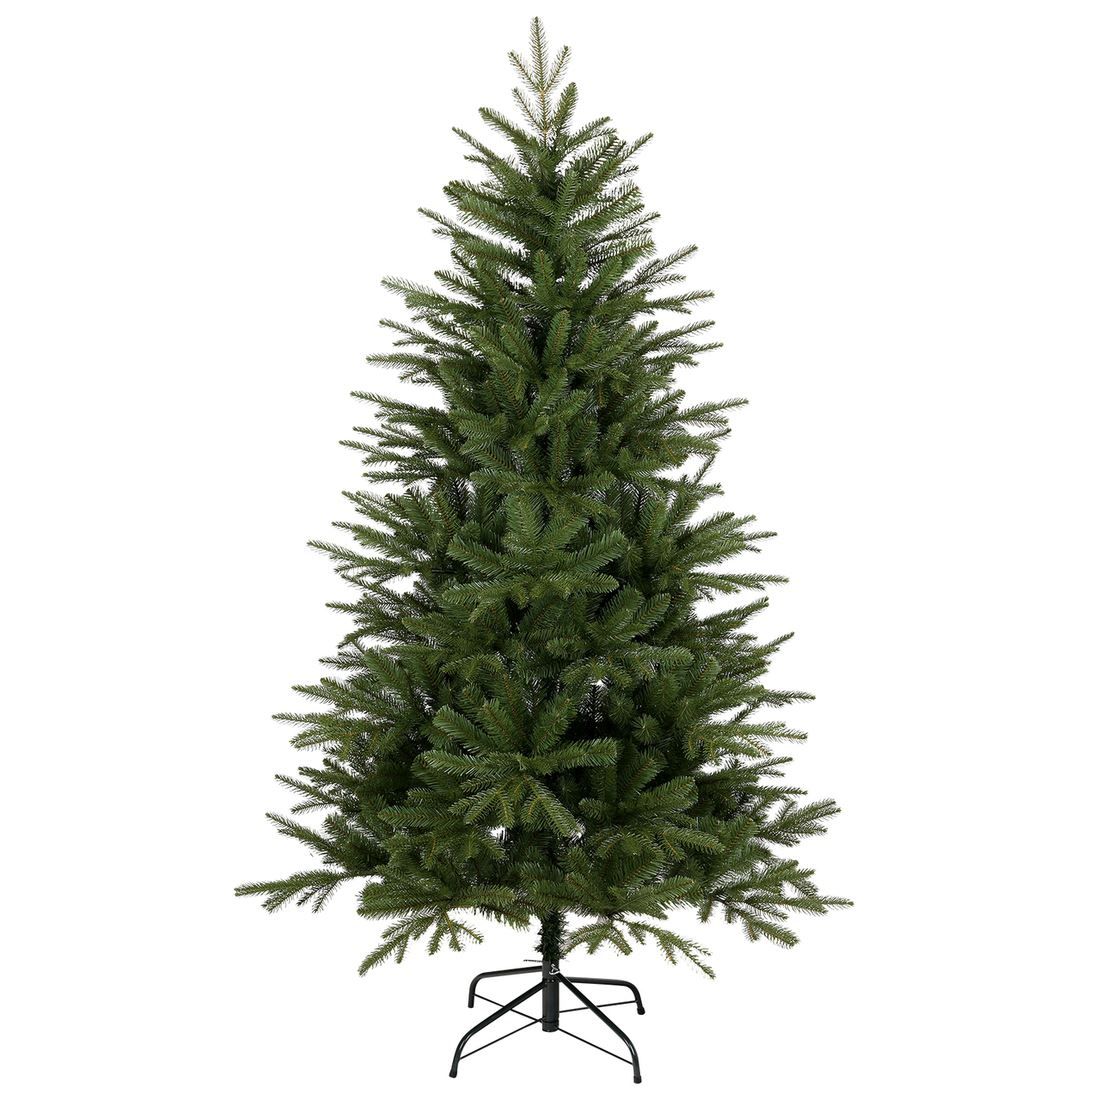 Artificial Christmas Trees Amazon Uk: 180cm (6ft) Luxury Artificial Spruce Christmas Tree